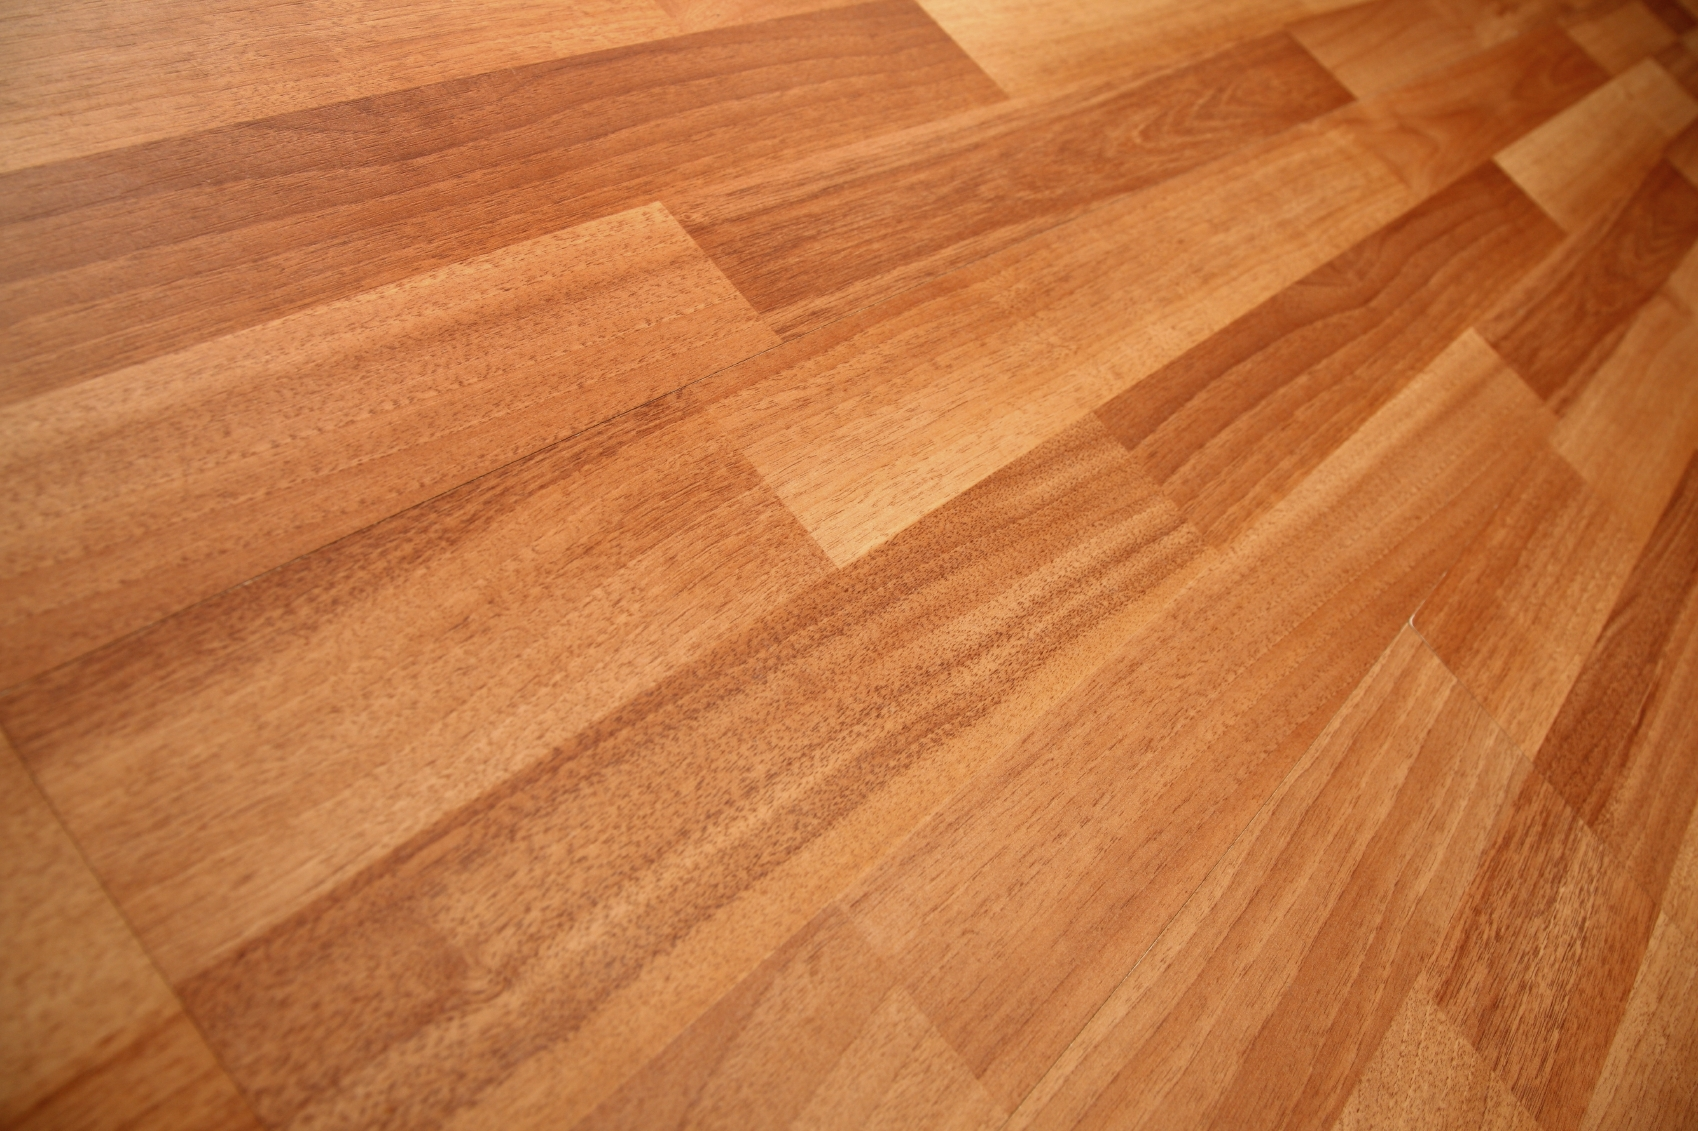 Laminate flooring care tips variety flooring ohio for Laminate flooring company